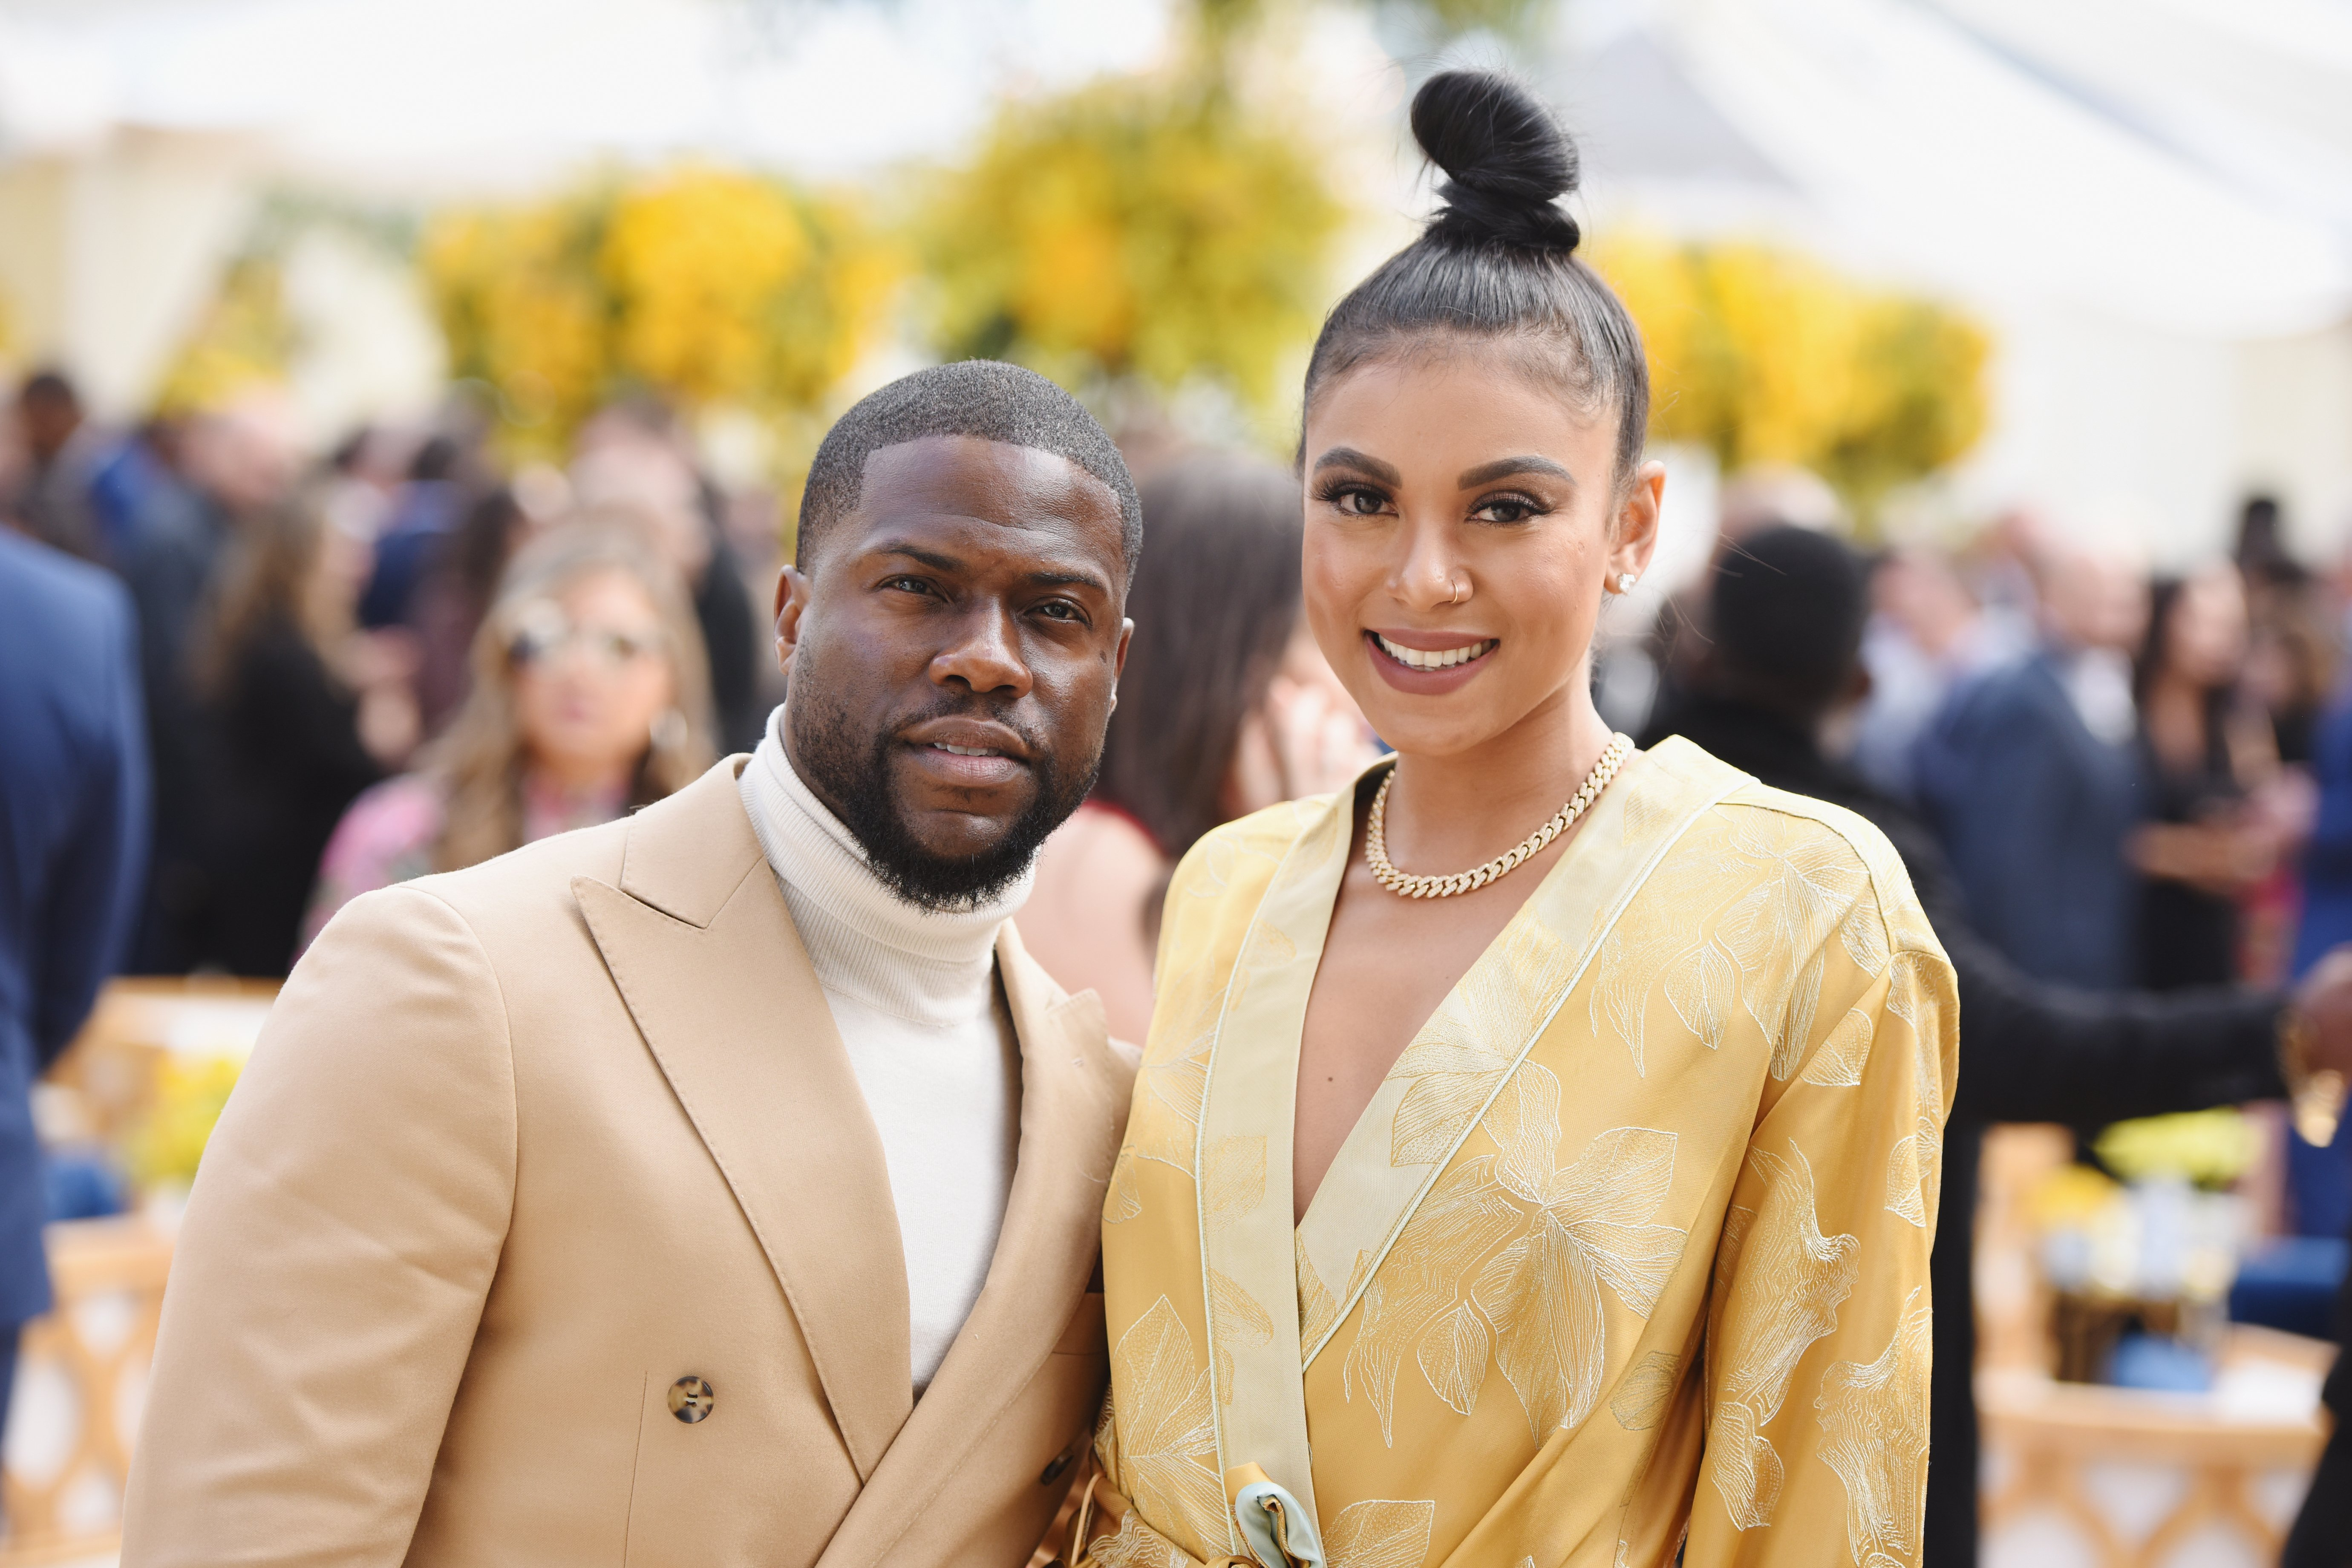 """Kevin Hart and Eniko Parrish at the 2019 Roc Nation's """"THE BRUNCH"""" on February 9, 2019 in Los Angeles, California. 